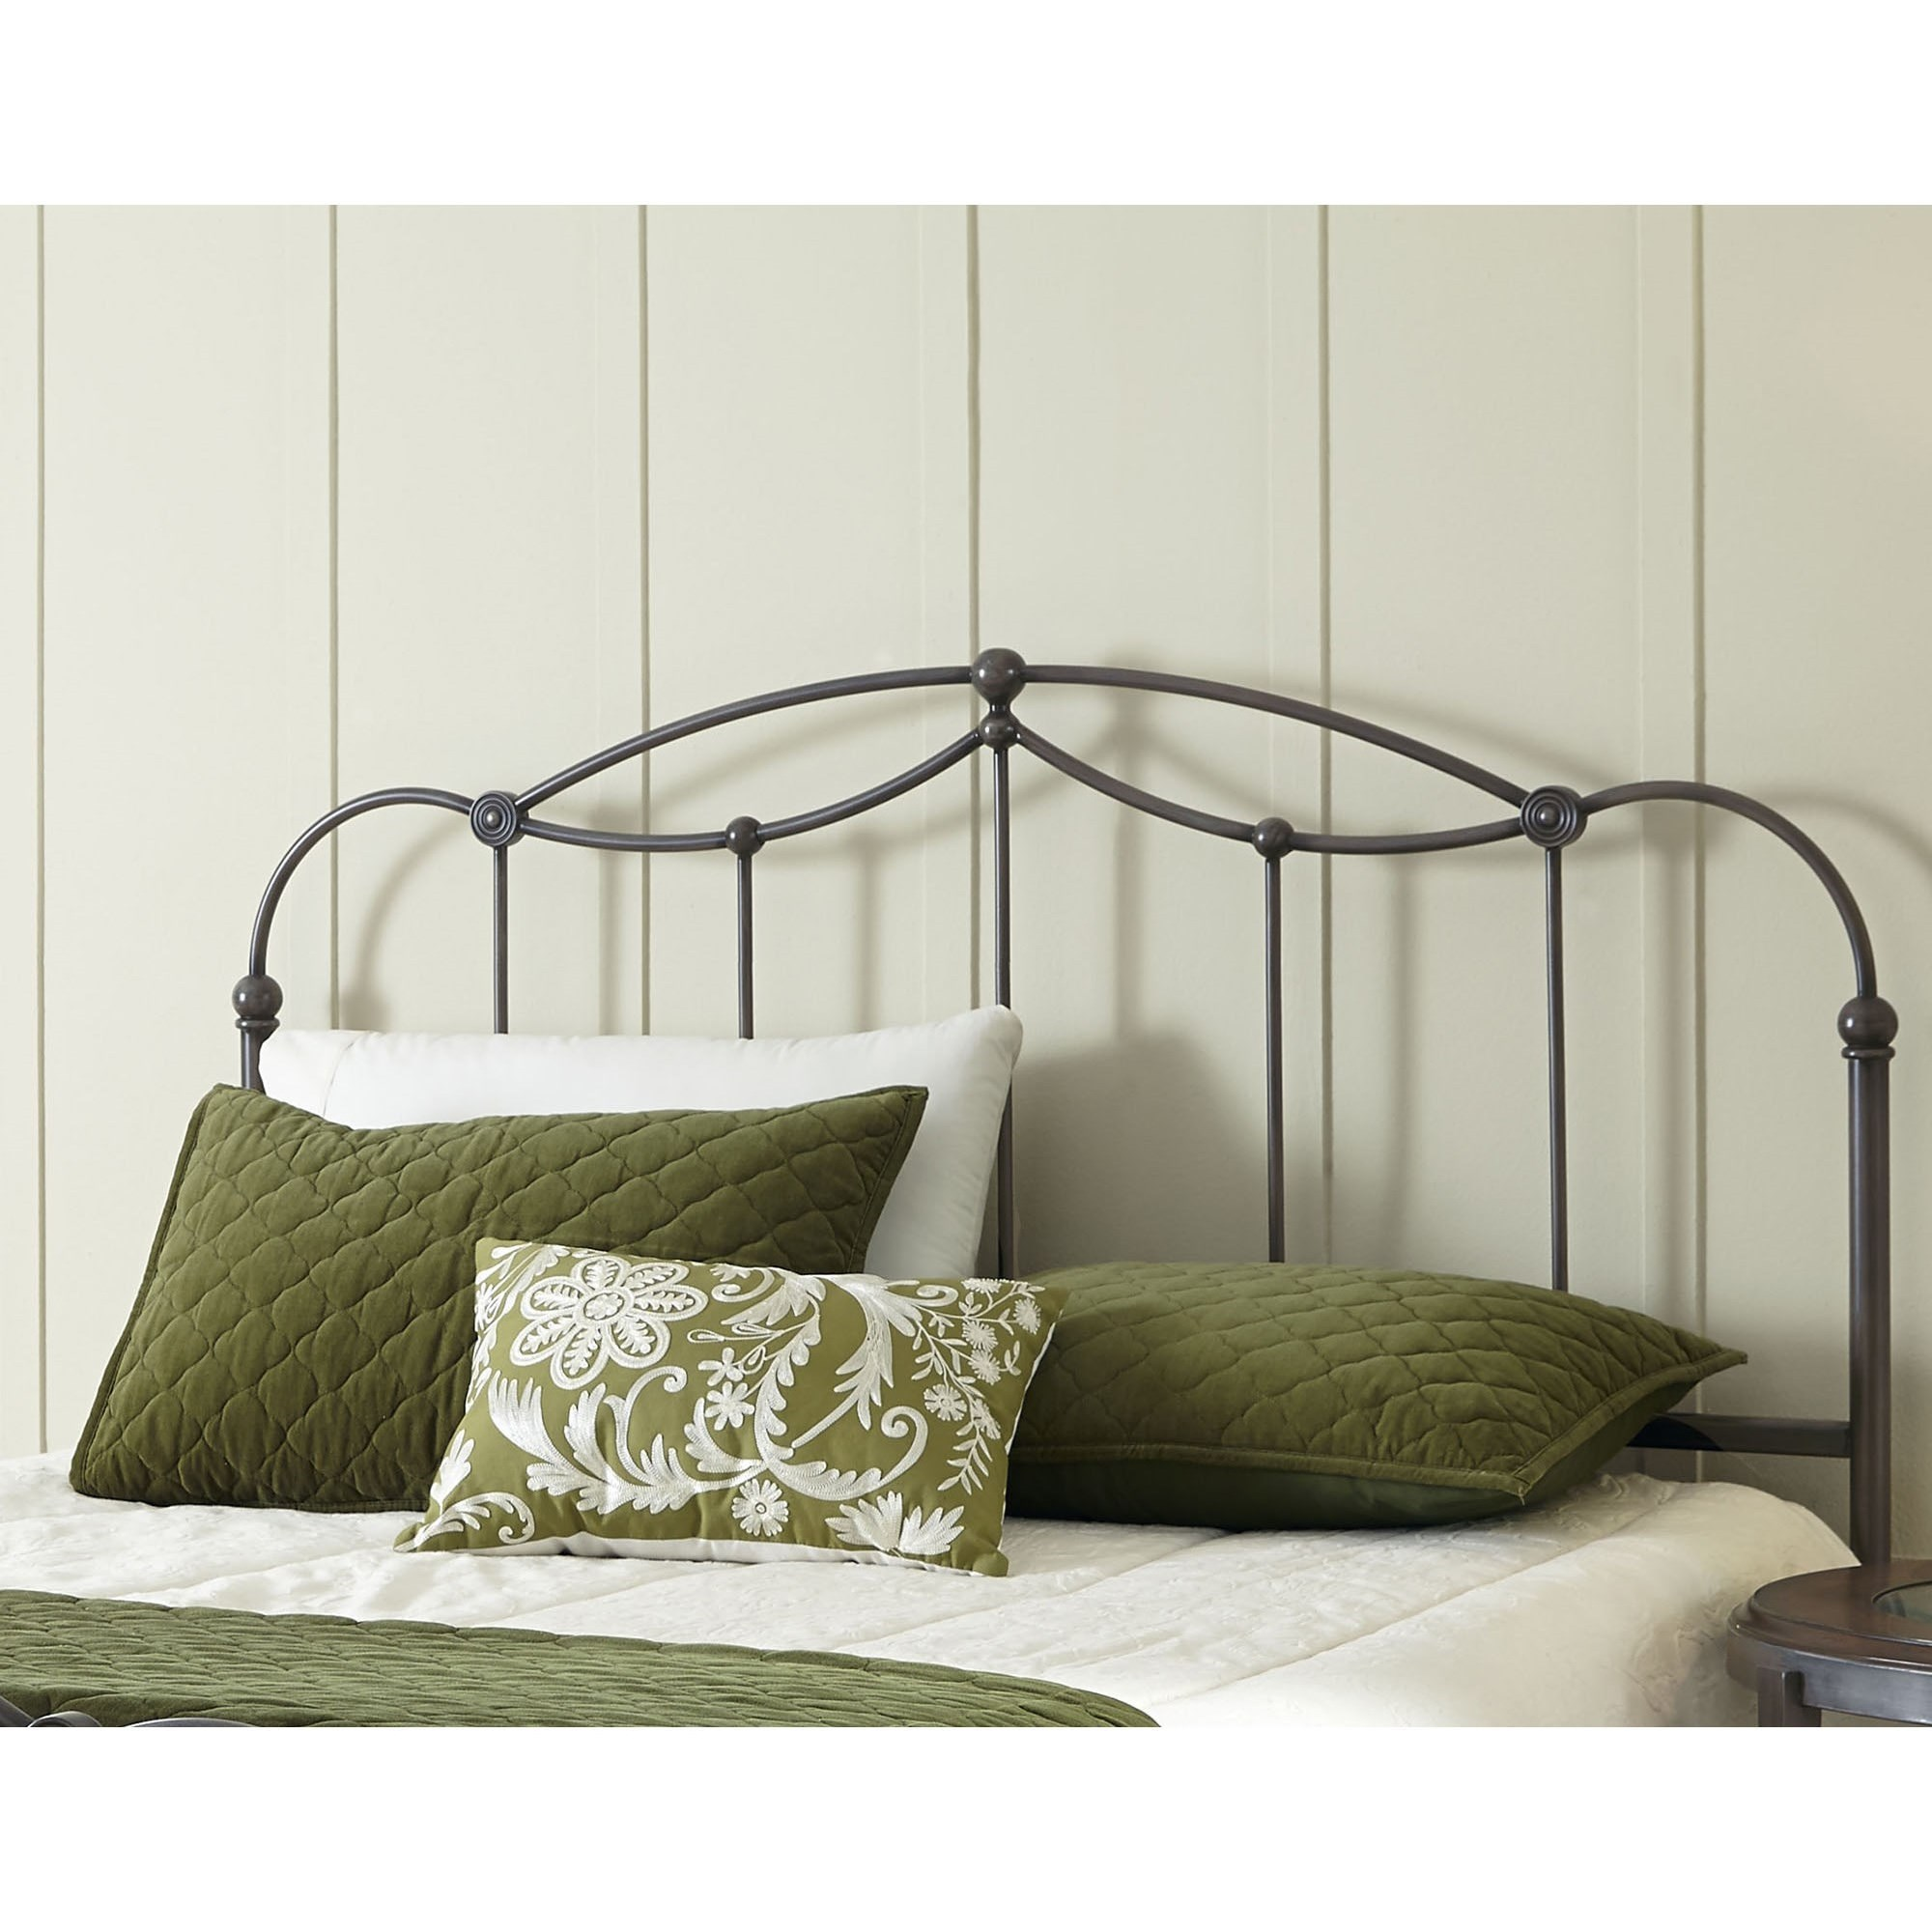 Fashion Bed Group Metal Beds Queen Transitional Affinity Metal Headboard Fa